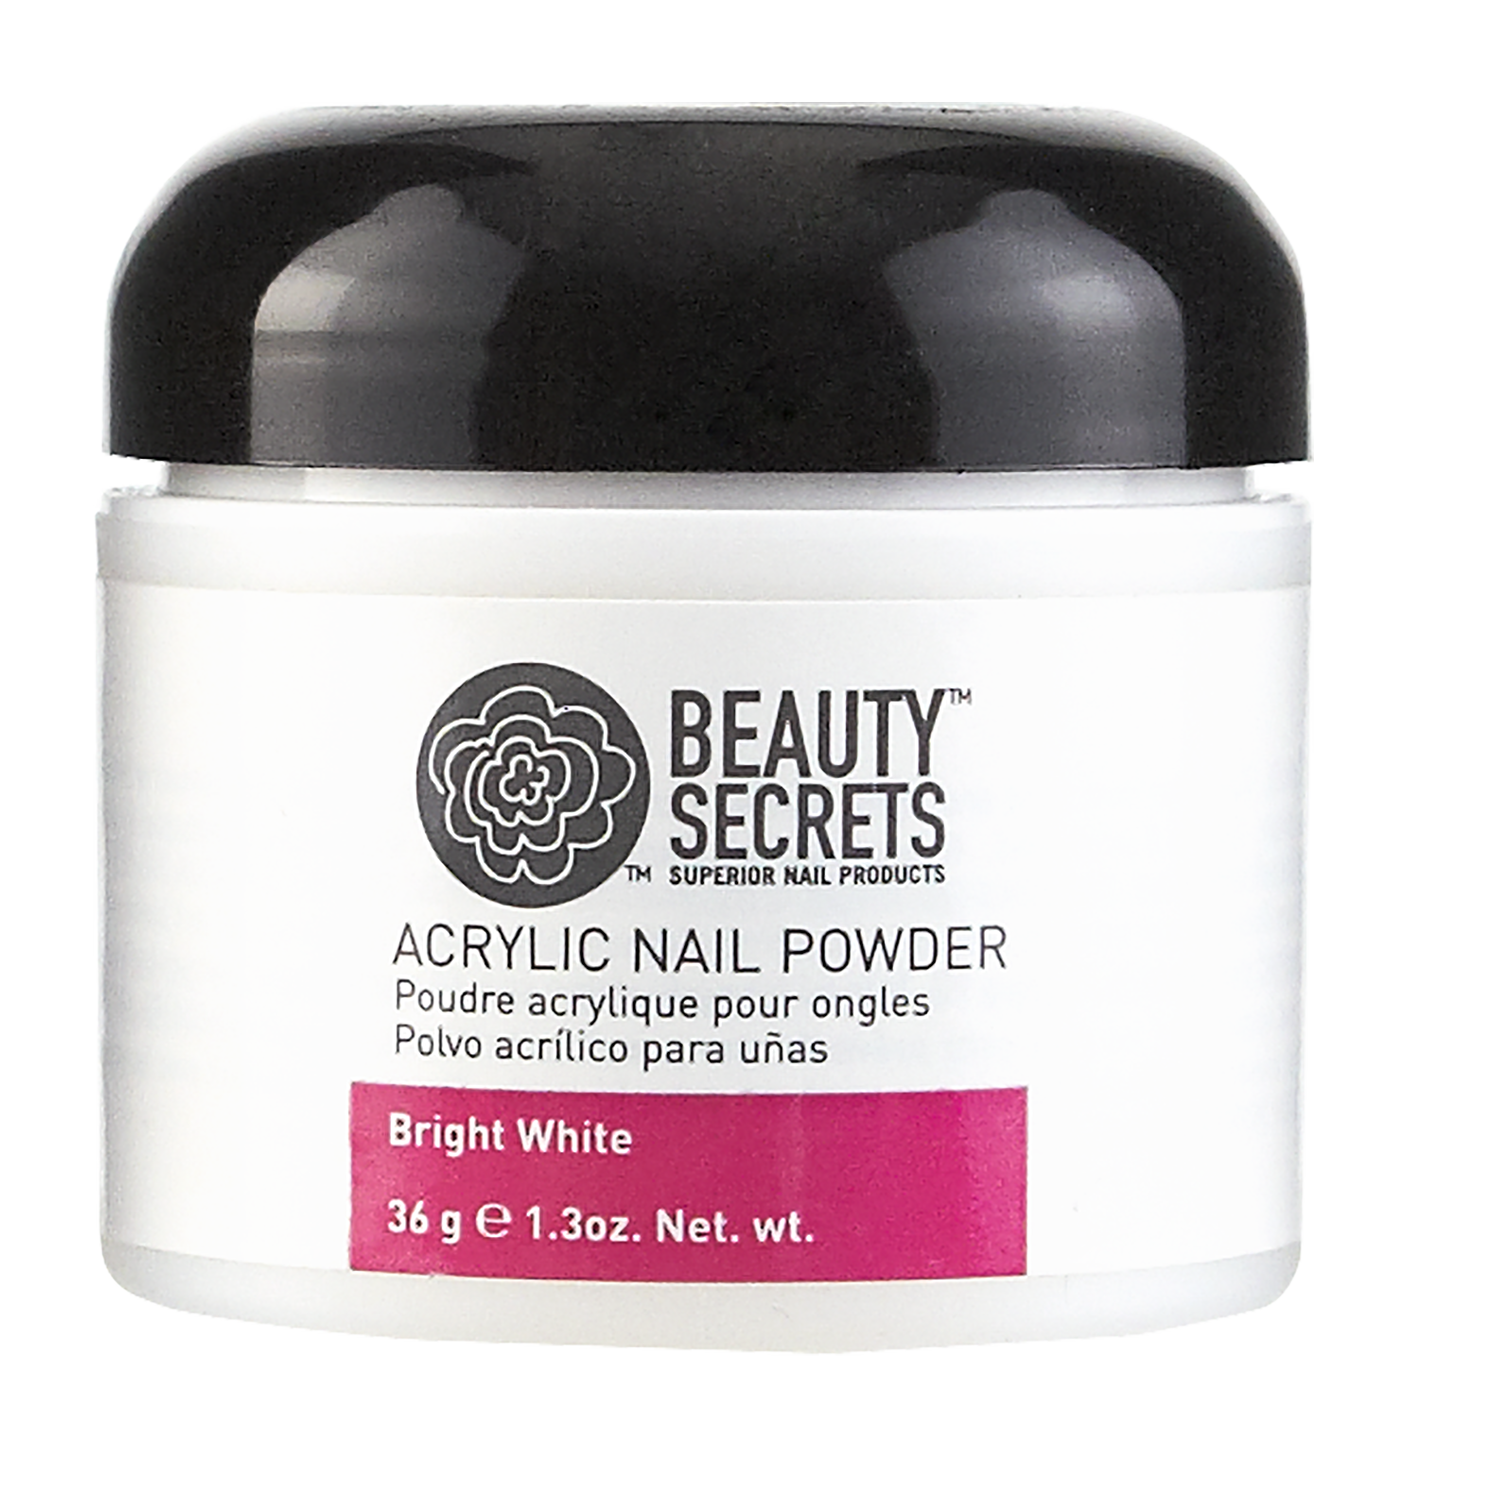 Beauty Secrets Bright White Acrylic Nail Powder